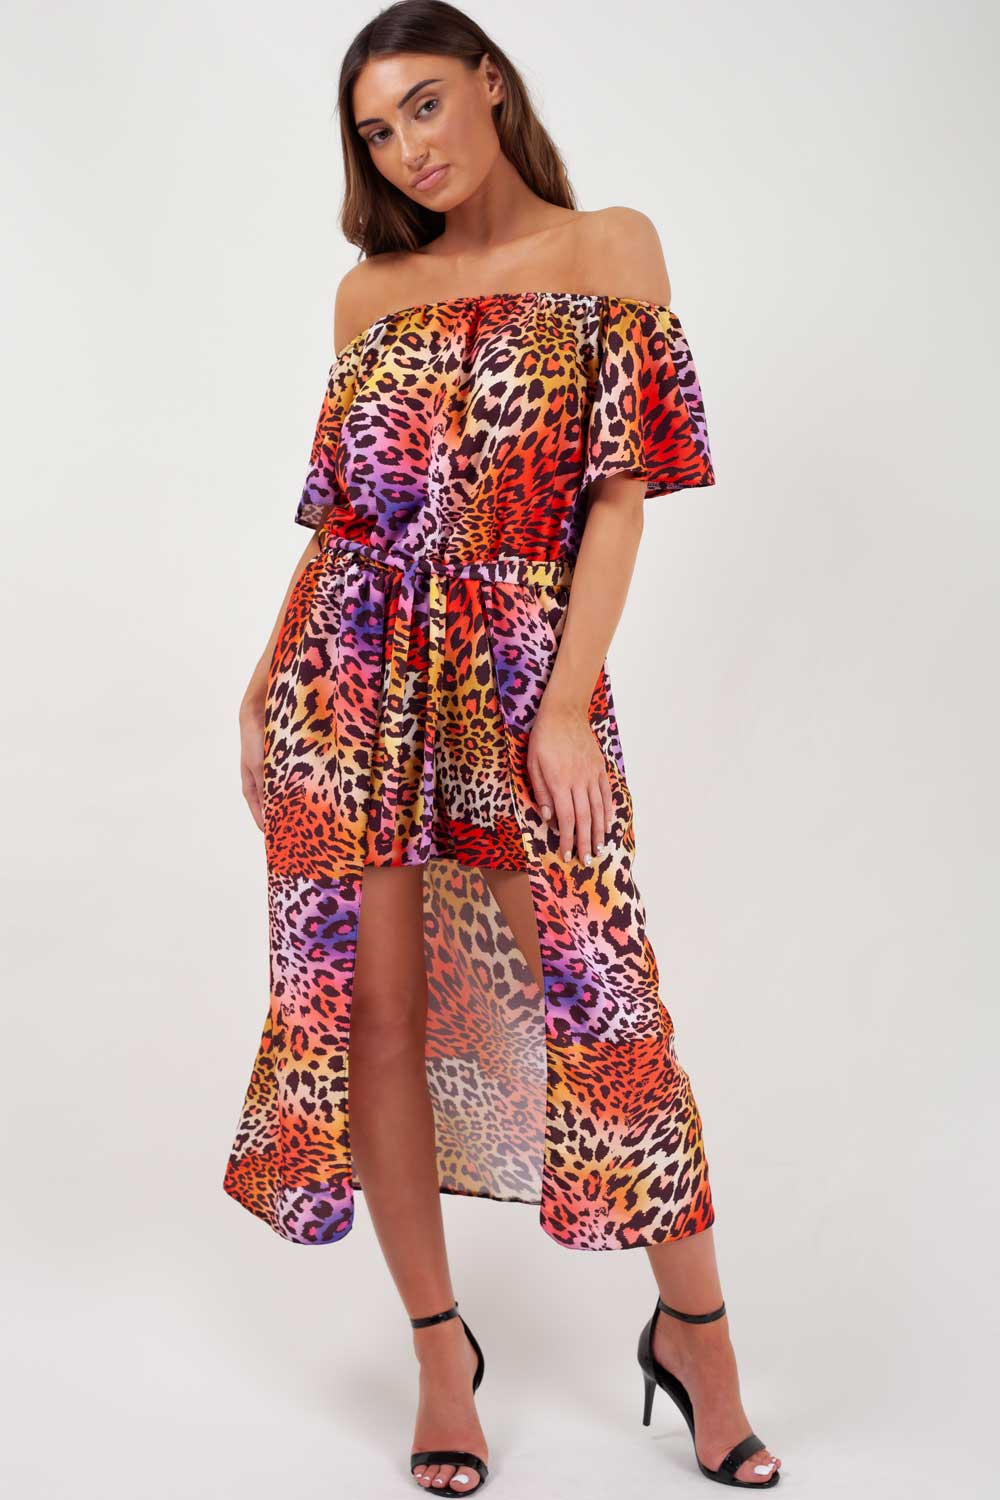 6500960f93d6 Leopard Print Off Shoulder Summer Playsuit – Styledup.co.uk